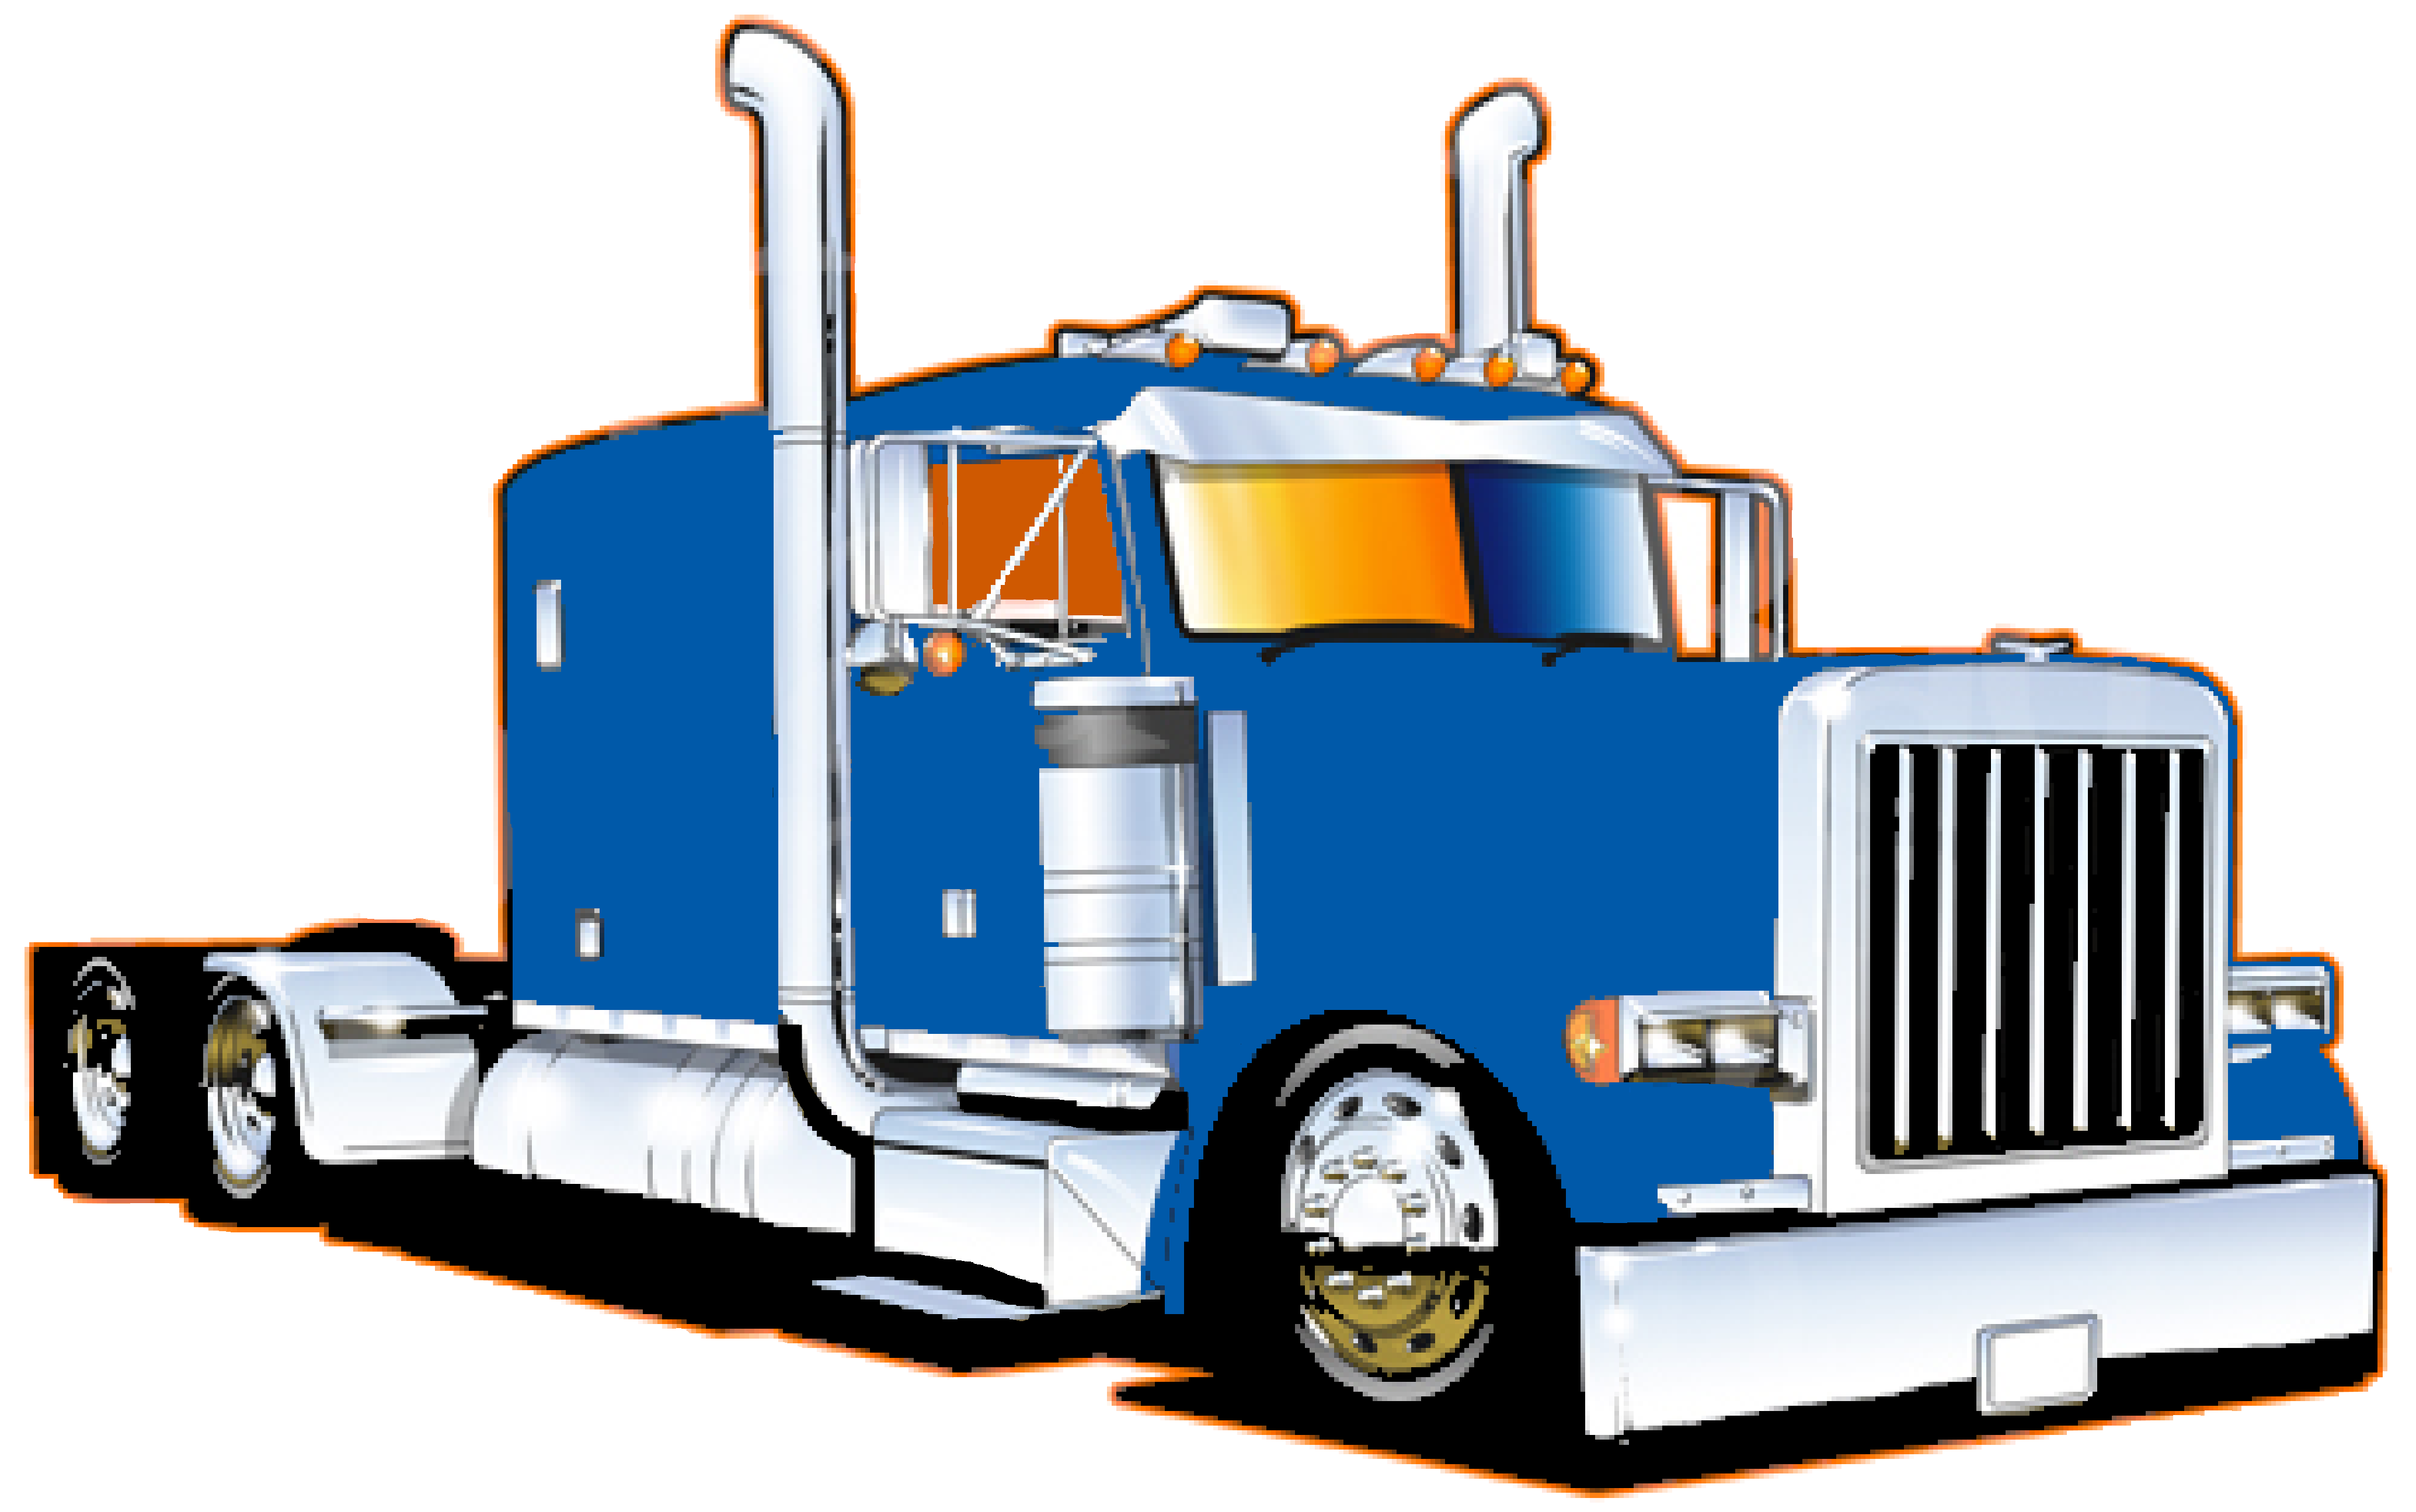 18 wheeler clipart free banner royalty free stock Free 18 Wheeler Cliparts, Download Free Clip Art, Free Clip Art on ... banner royalty free stock